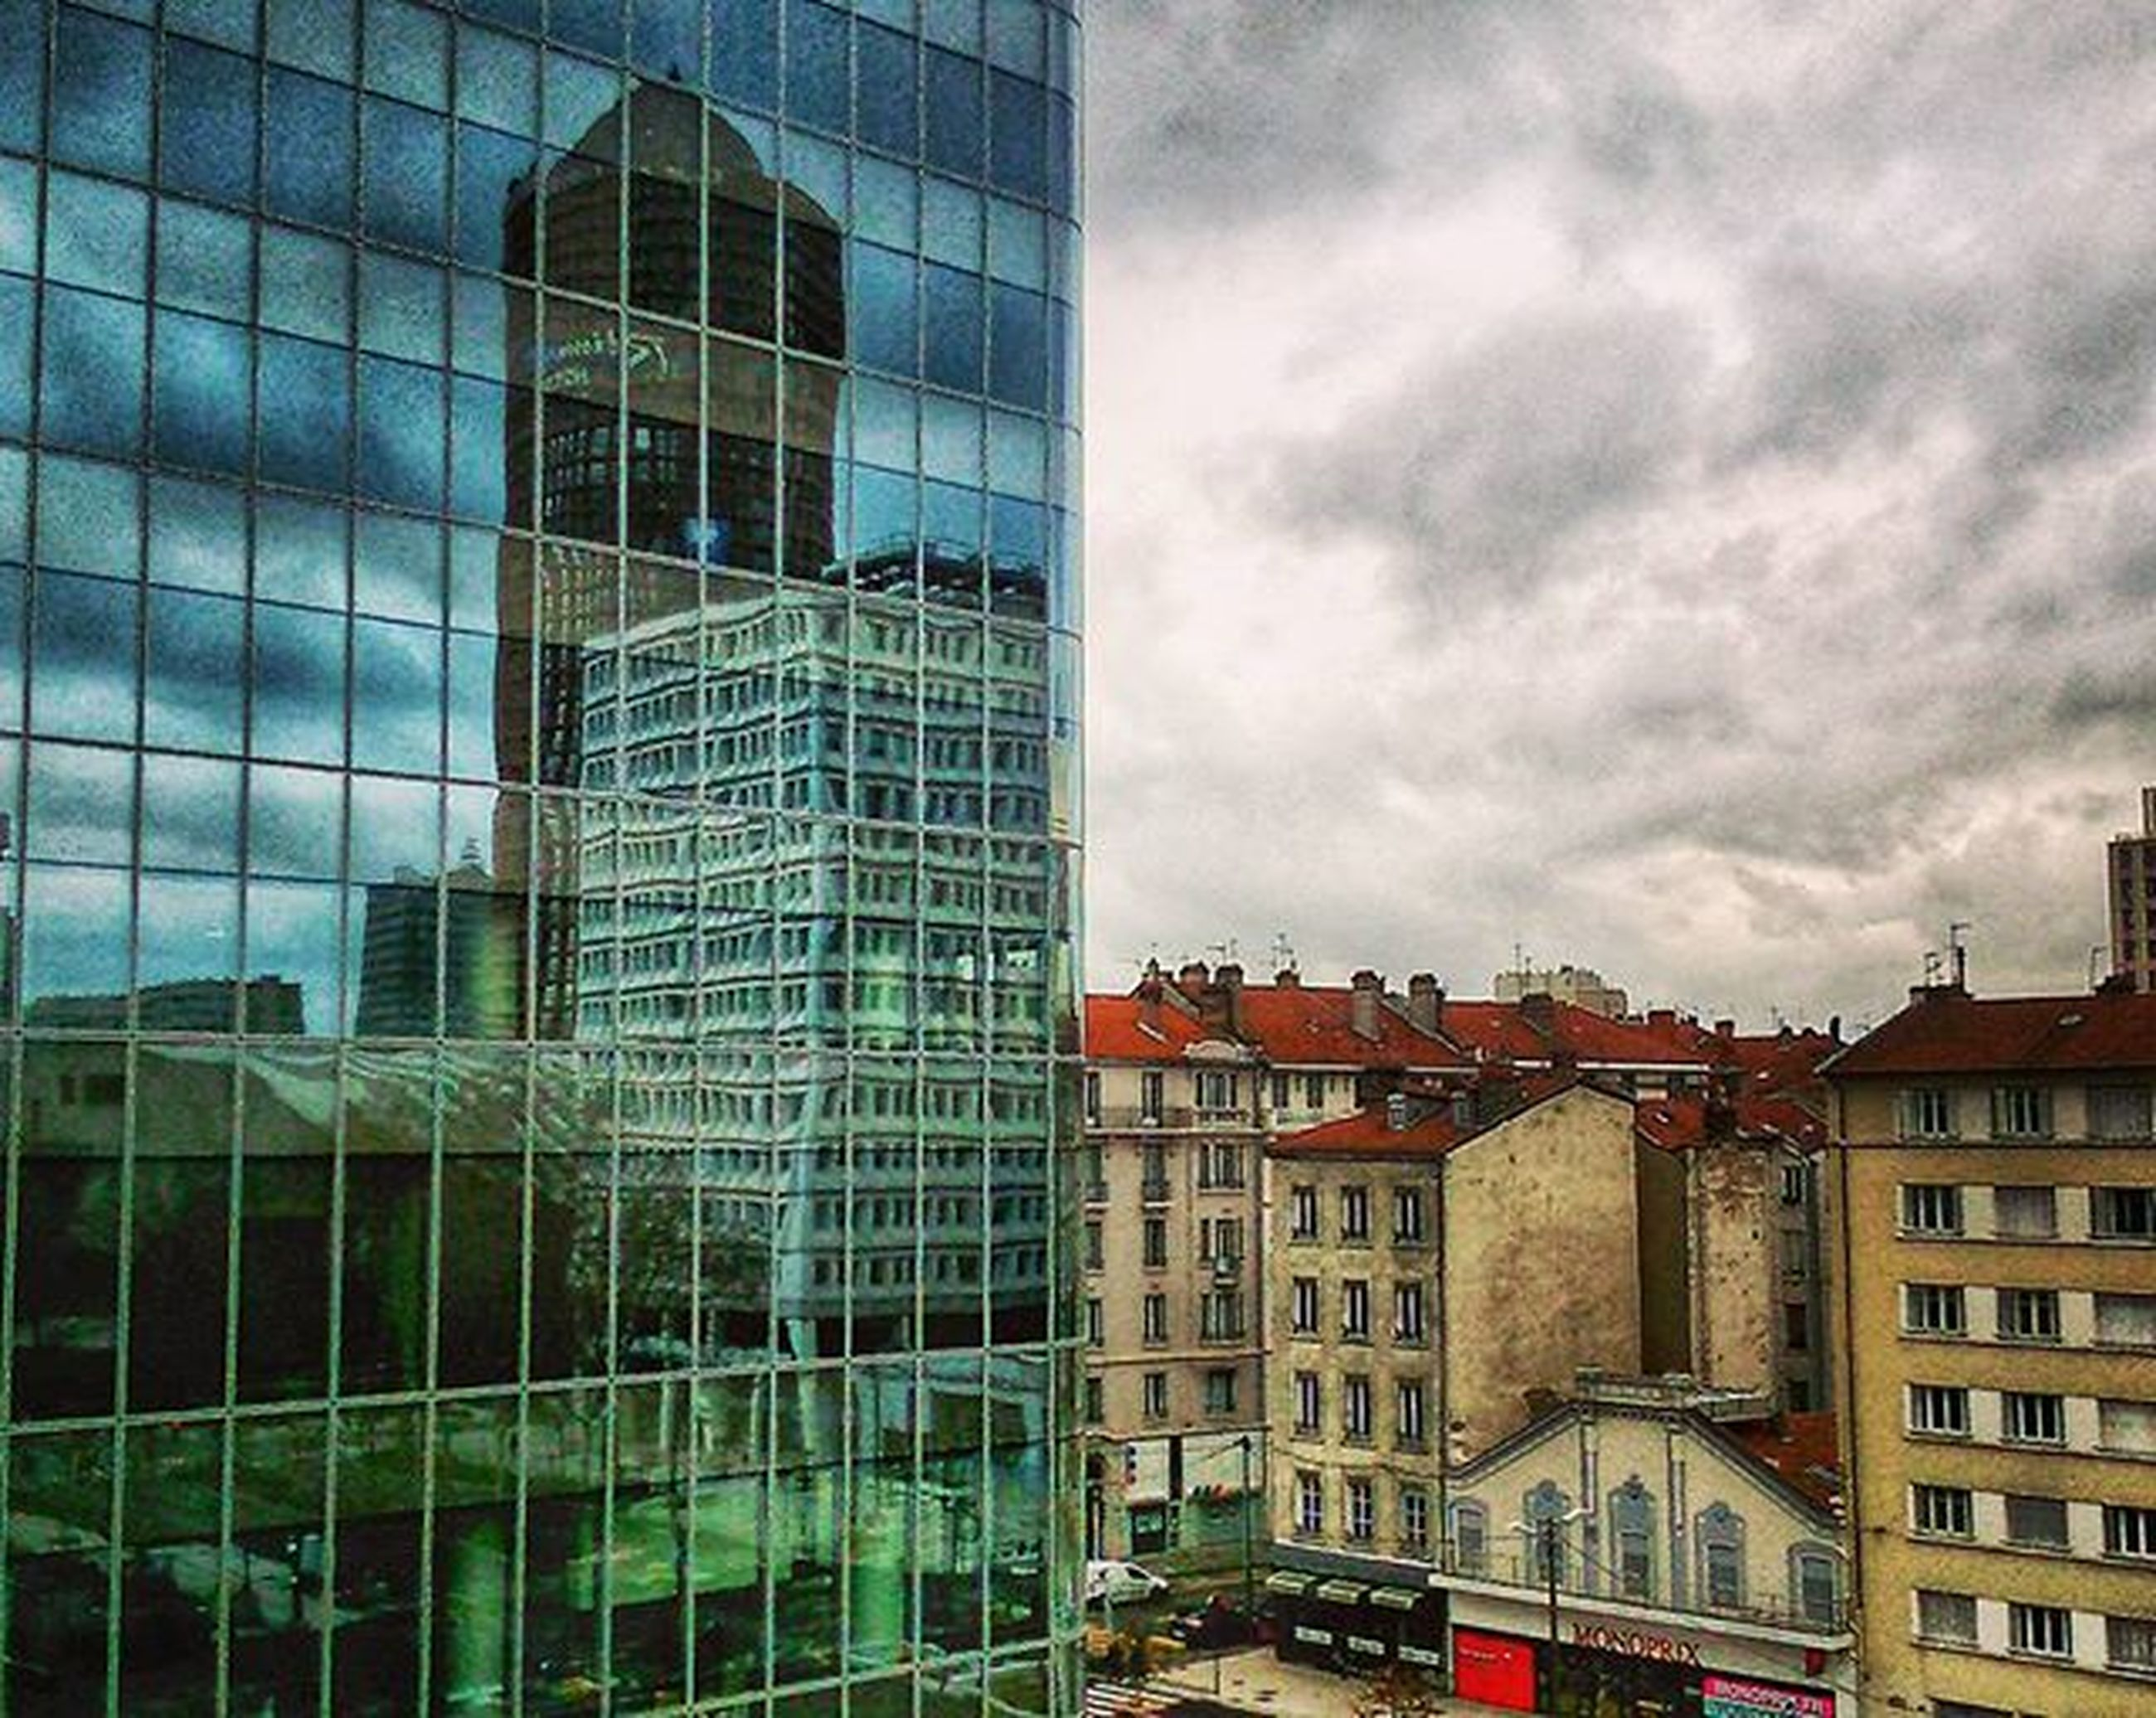 building exterior, architecture, built structure, city, sky, modern, office building, cloud - sky, building, glass - material, skyscraper, cloudy, window, low angle view, city life, tall - high, residential building, car, cloud, day